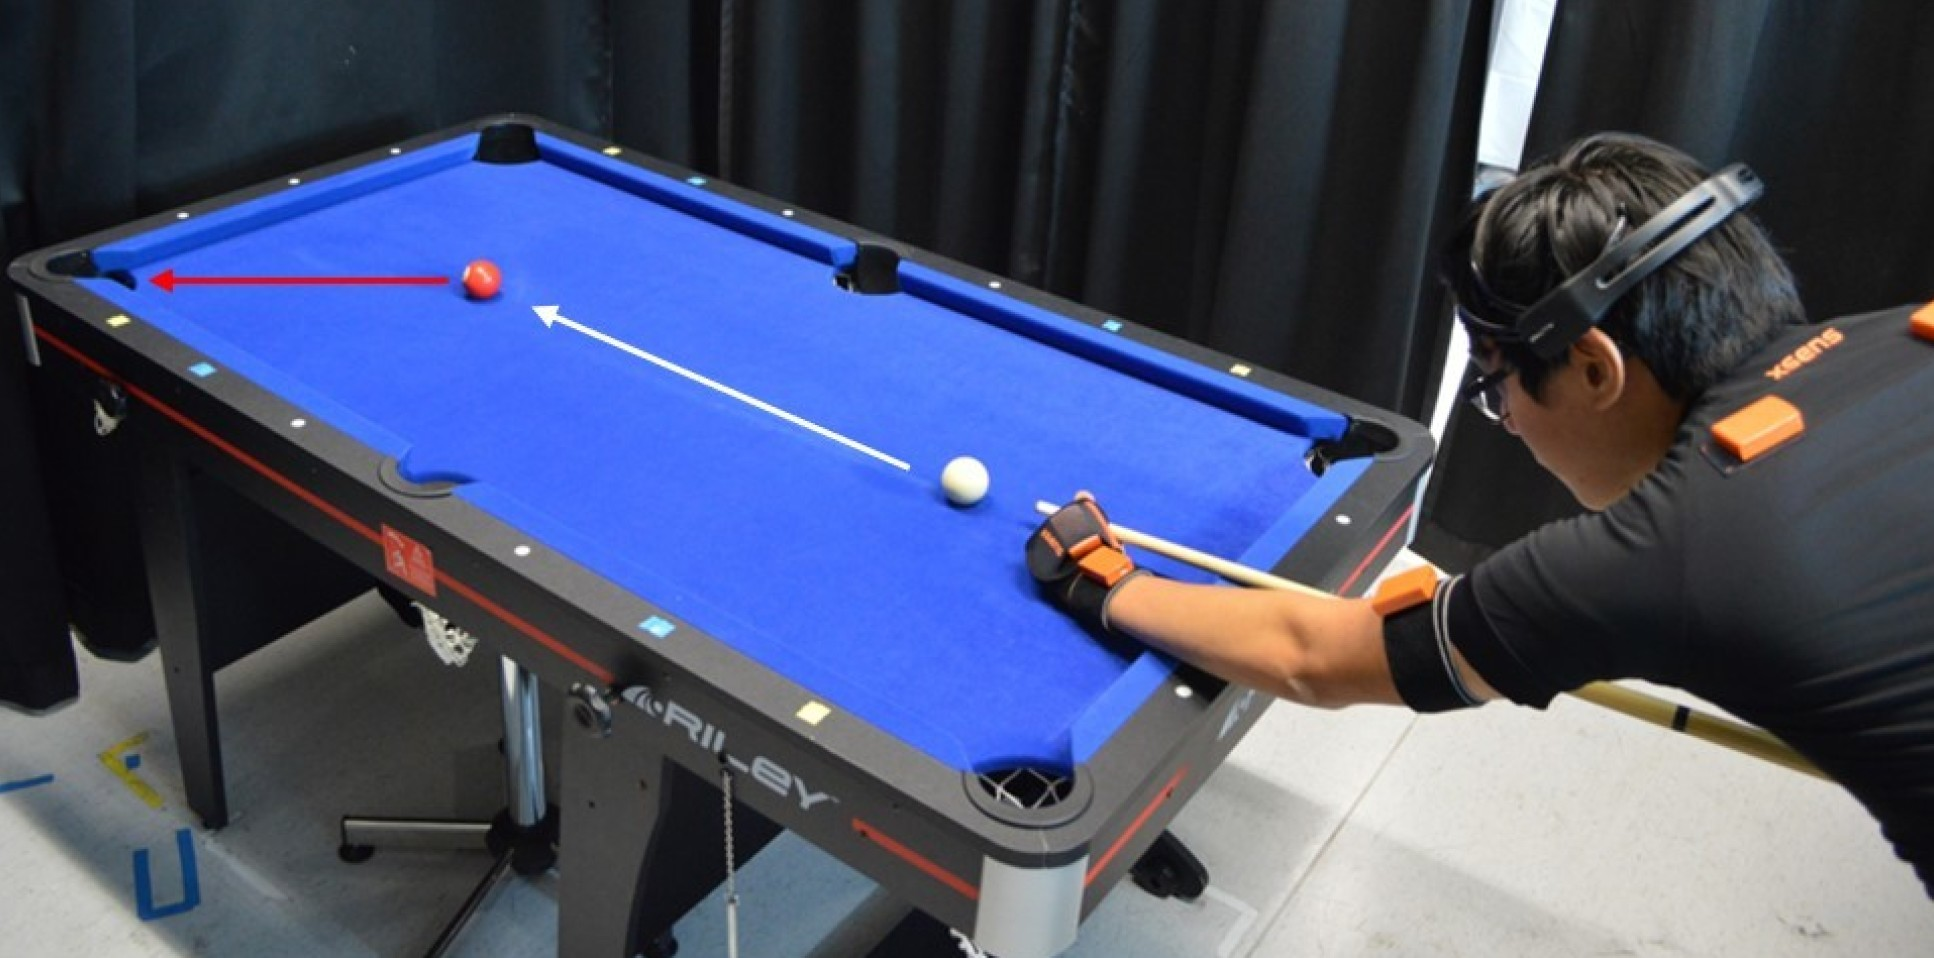 A study participant wearing motion sensors playing pool.